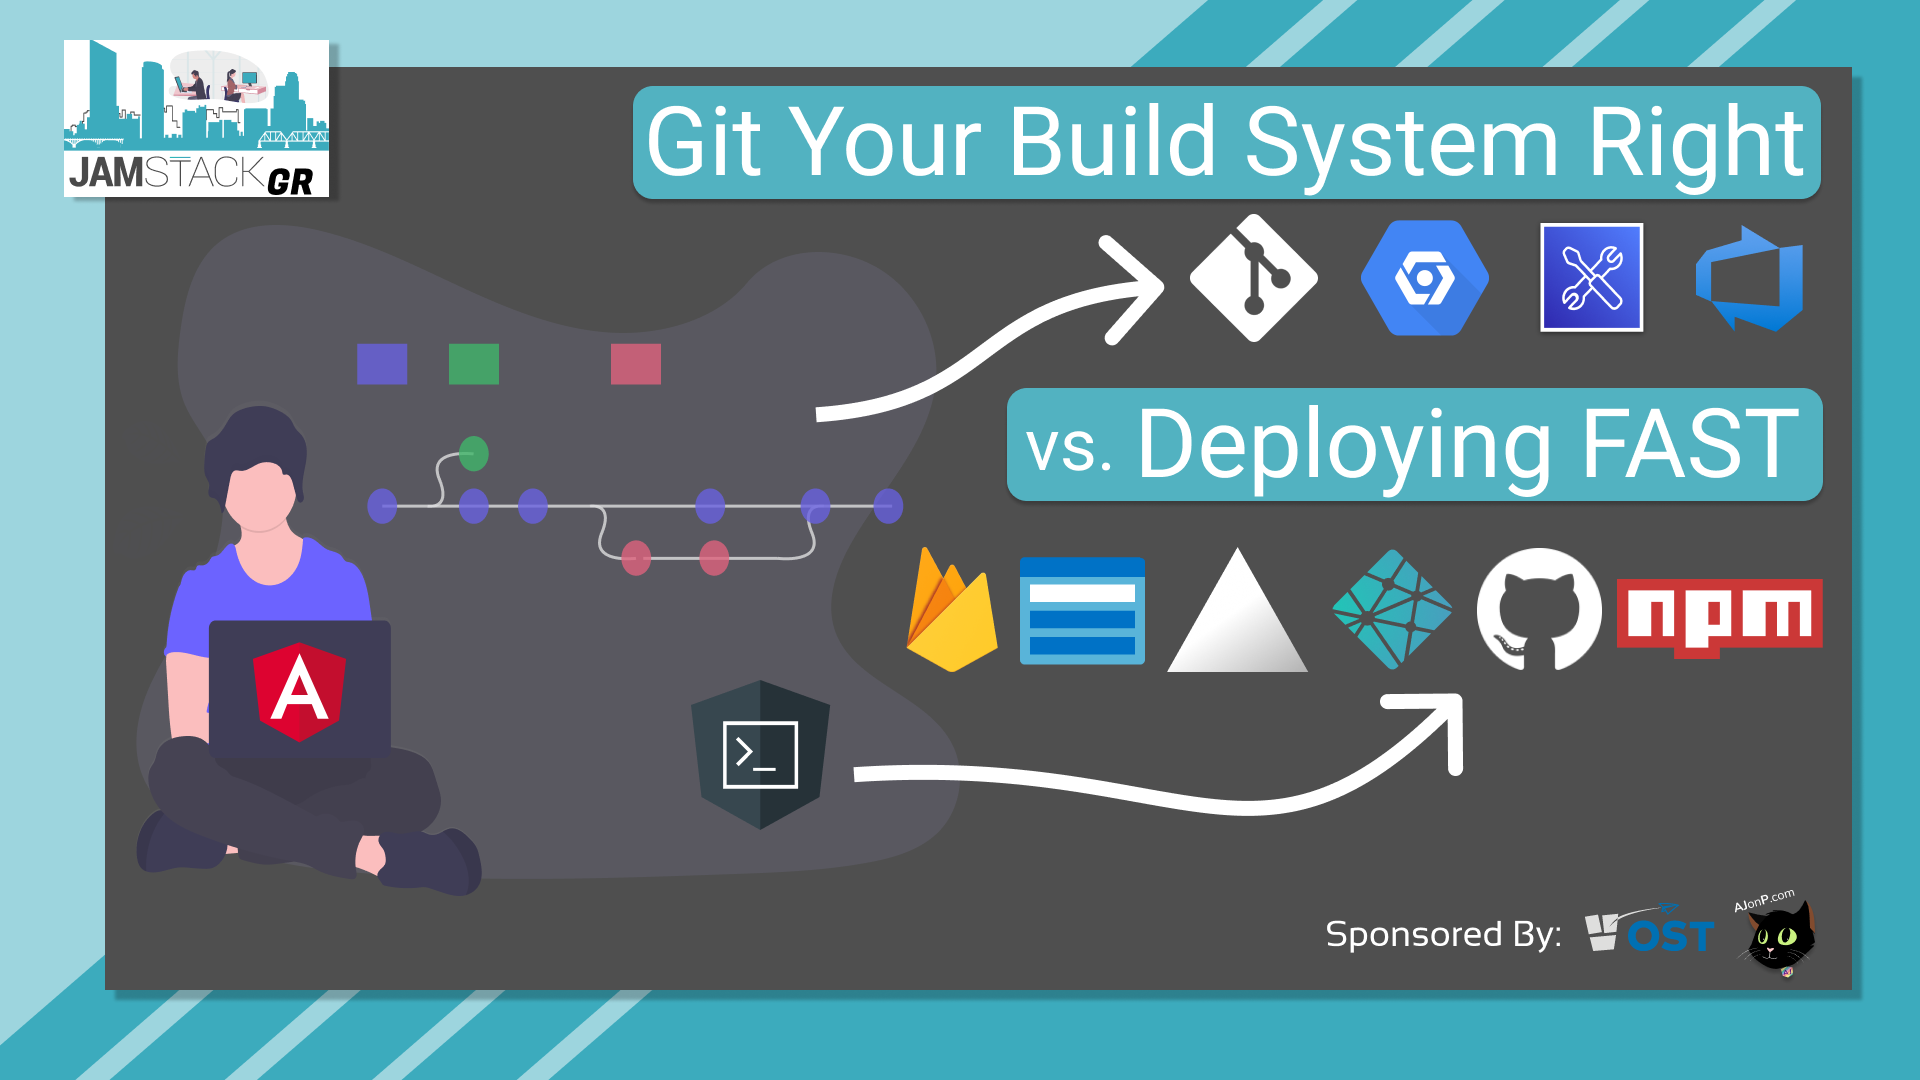 JAMStackGR Git Your Build System Right vs. Deploying Fast